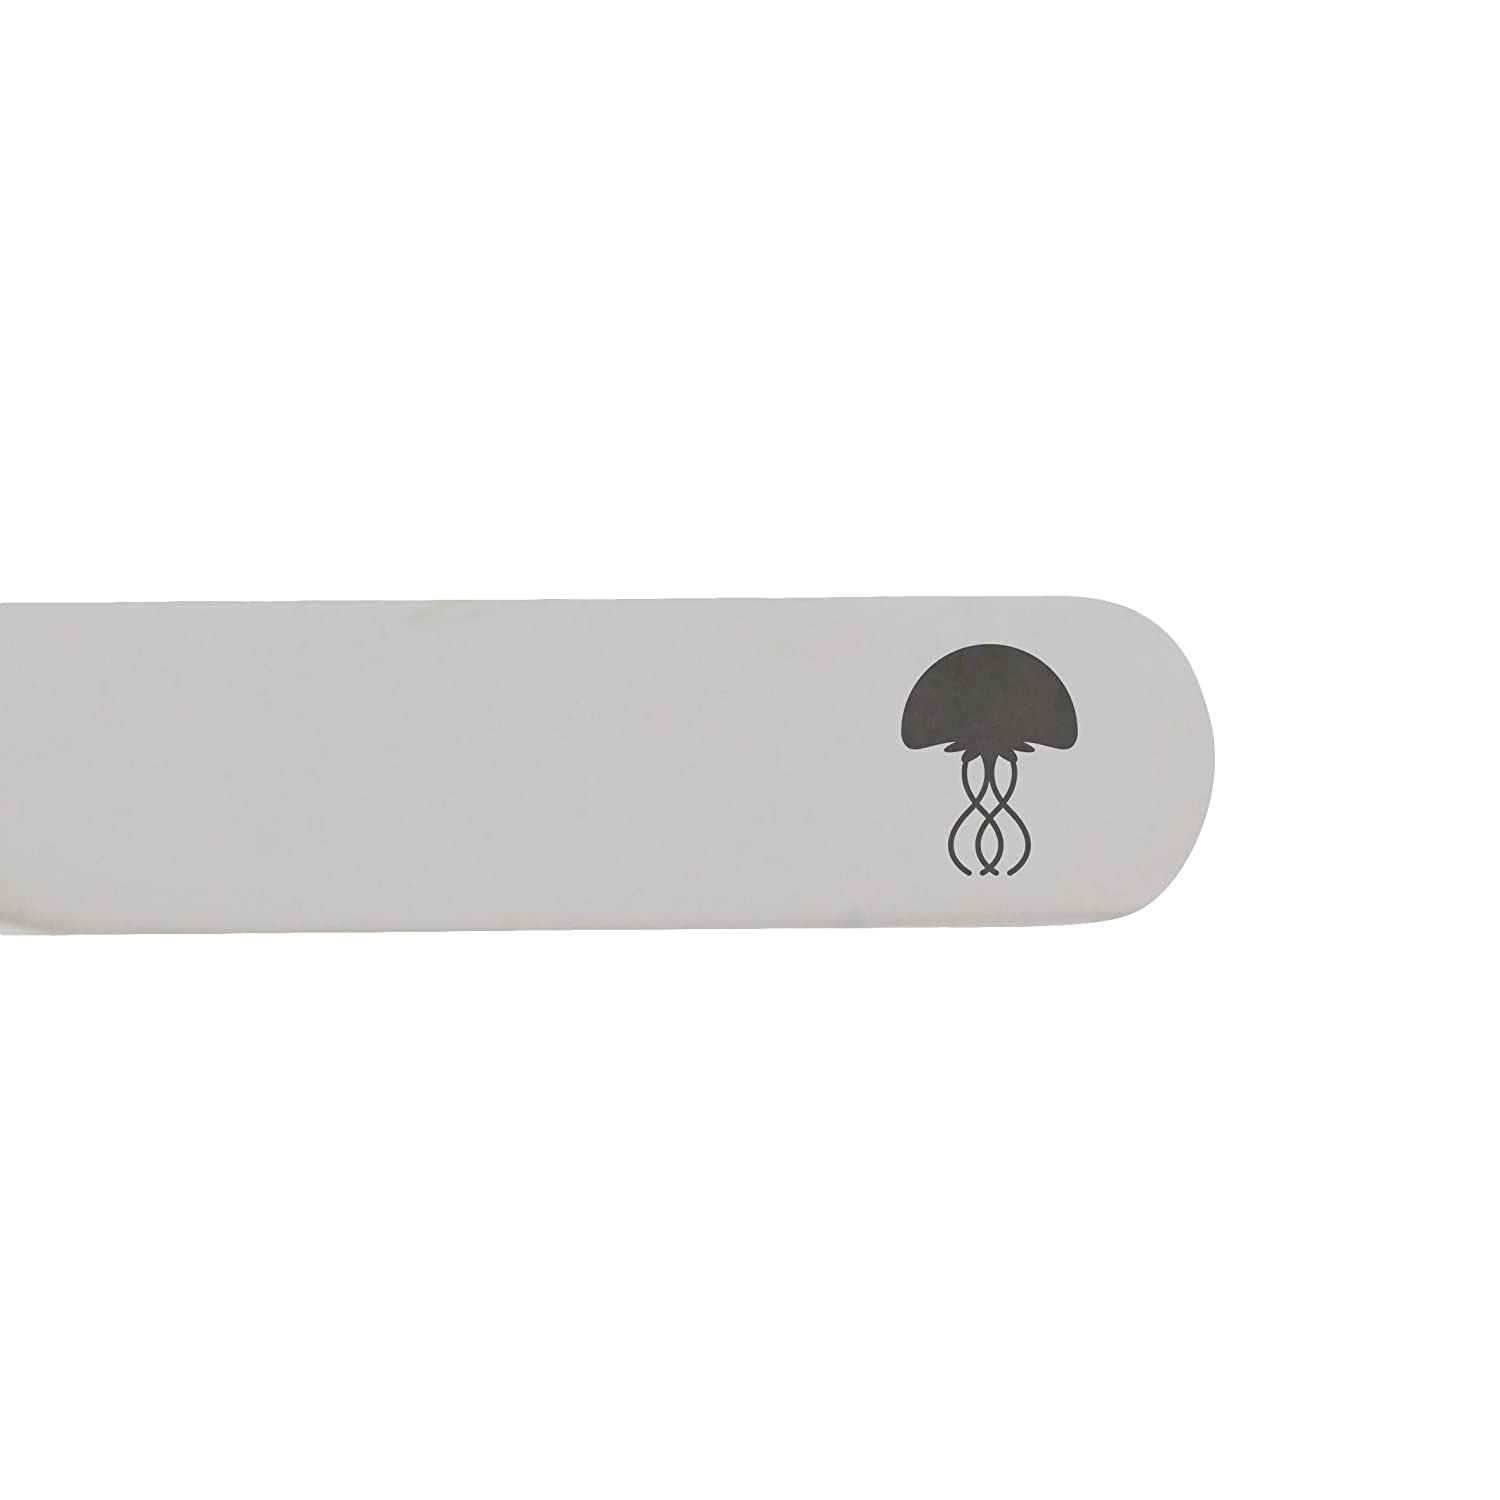 MODERN GOODS SHOP Stainless Steel Collar Stays With Laser Engraved Jellyfish Design Made In USA 2.5 Inch Metal Collar Stiffeners